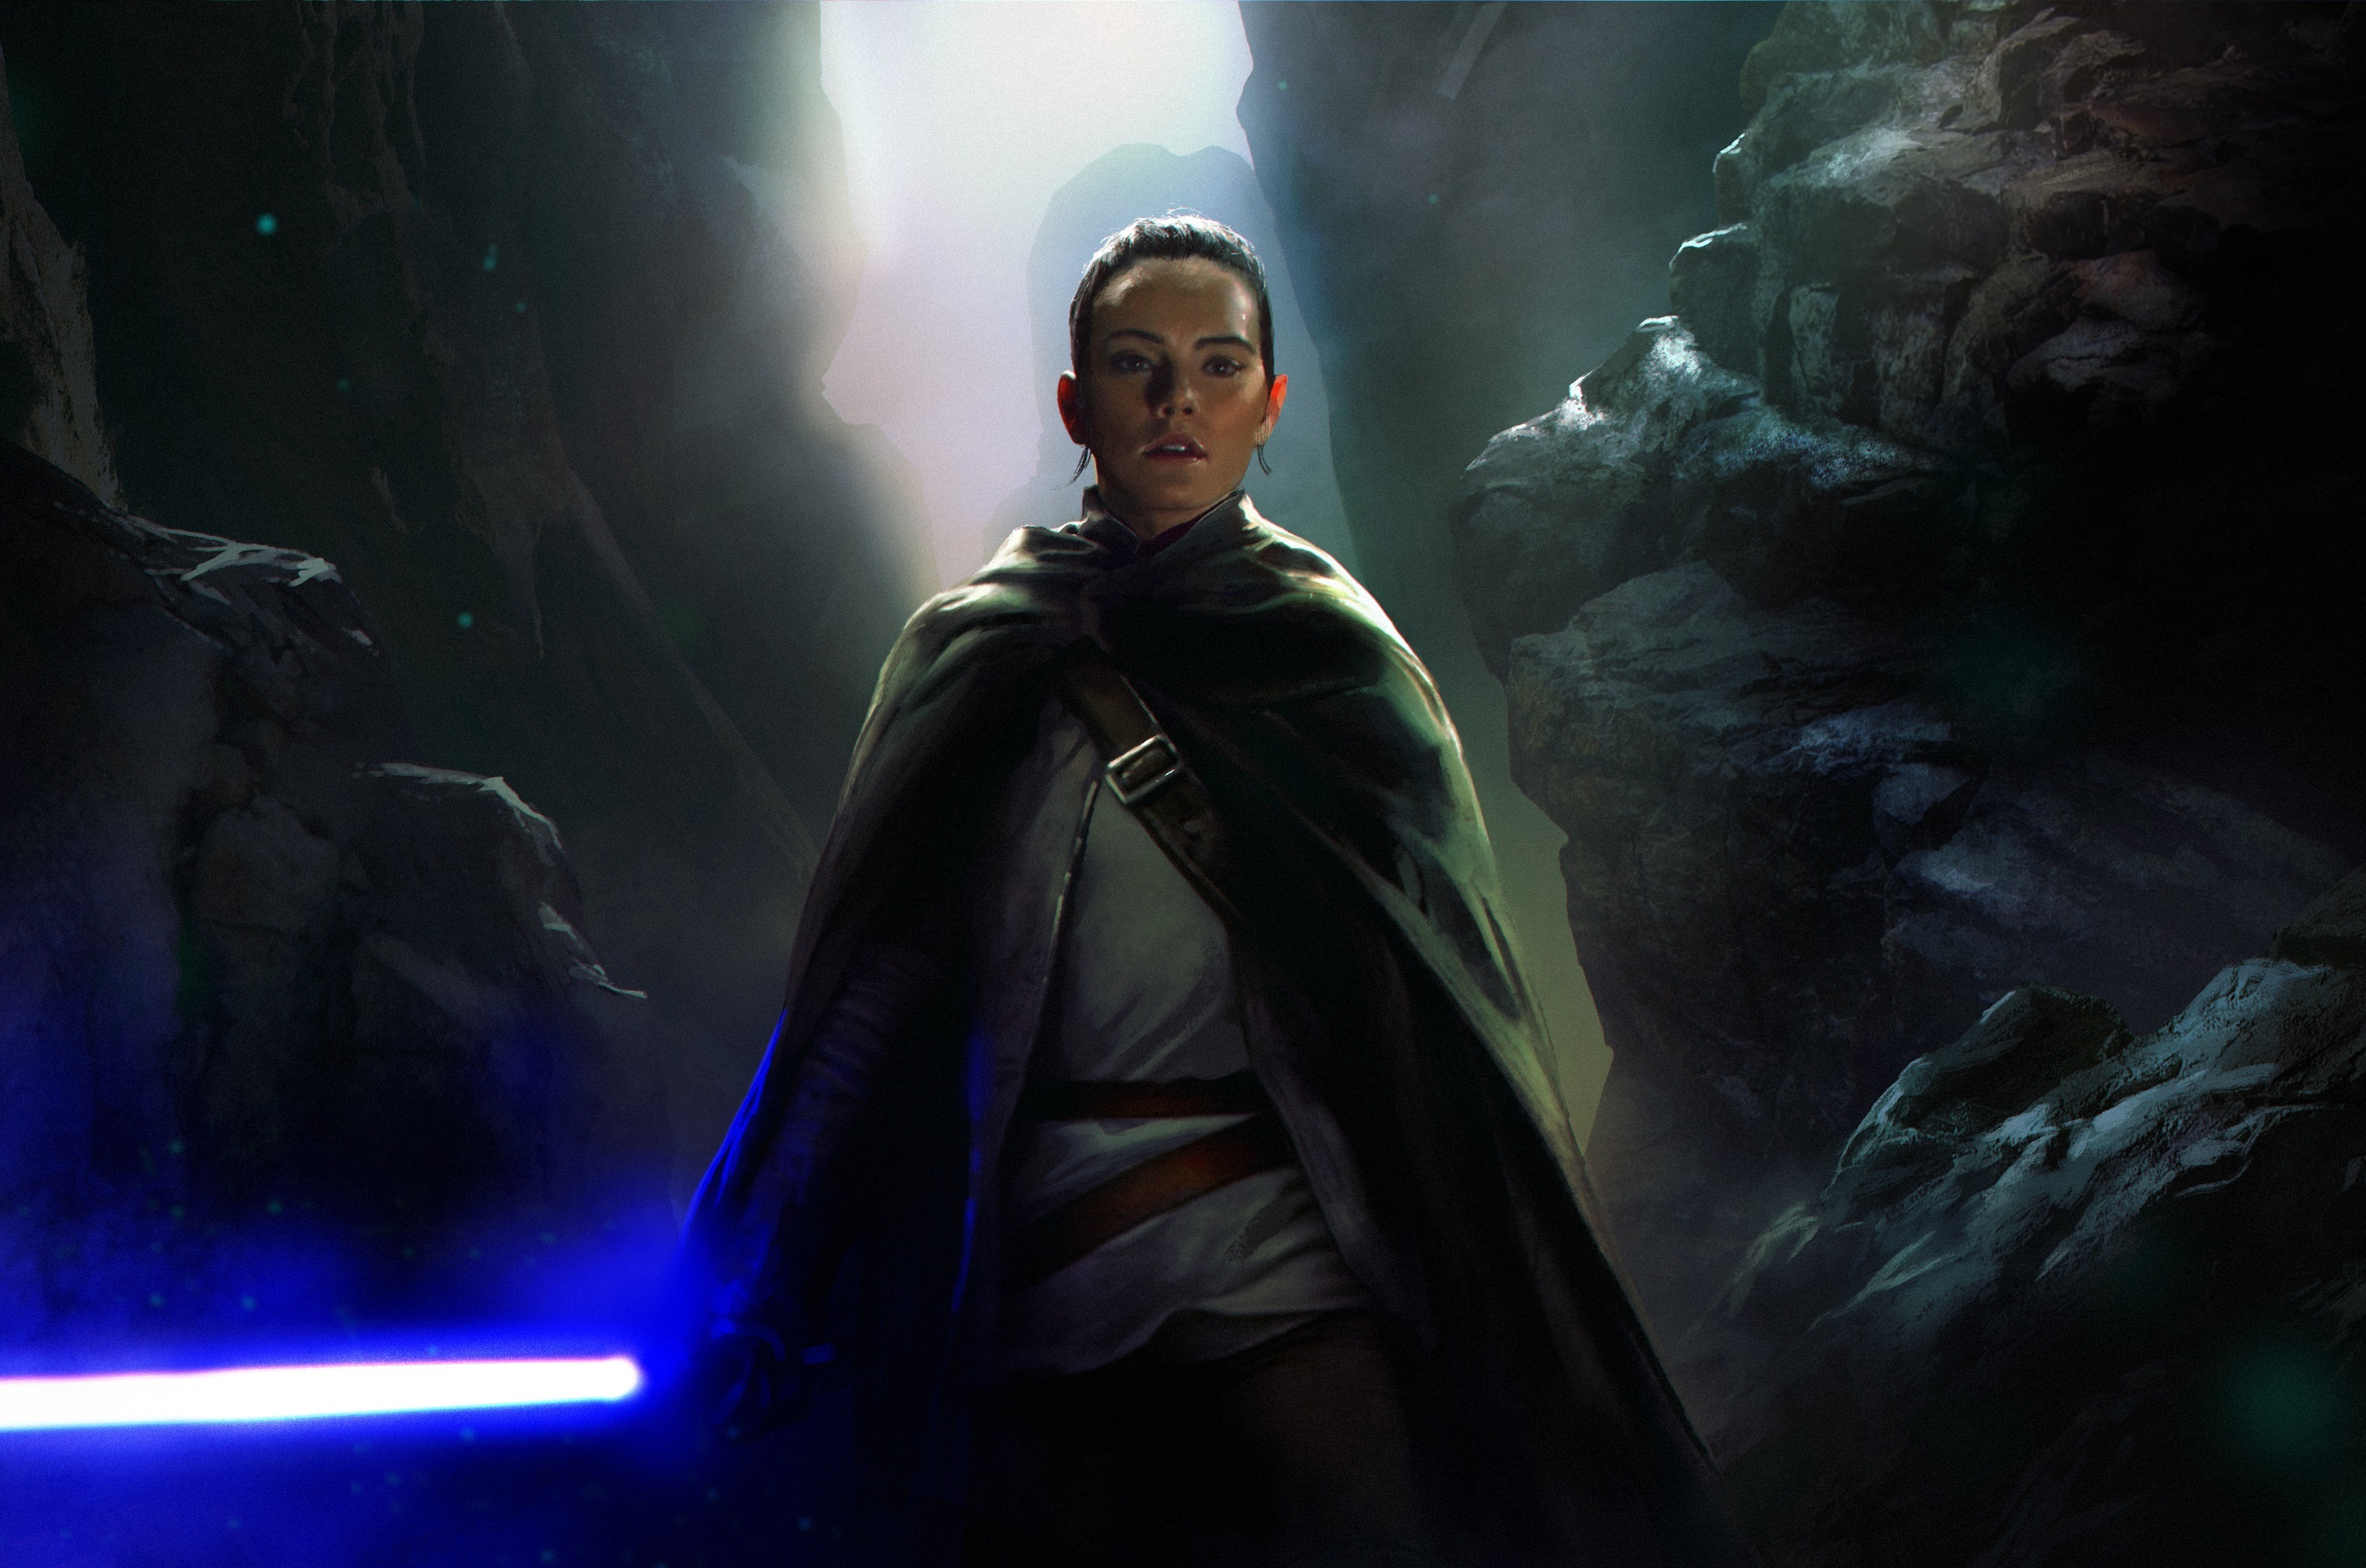 REY by mehdic